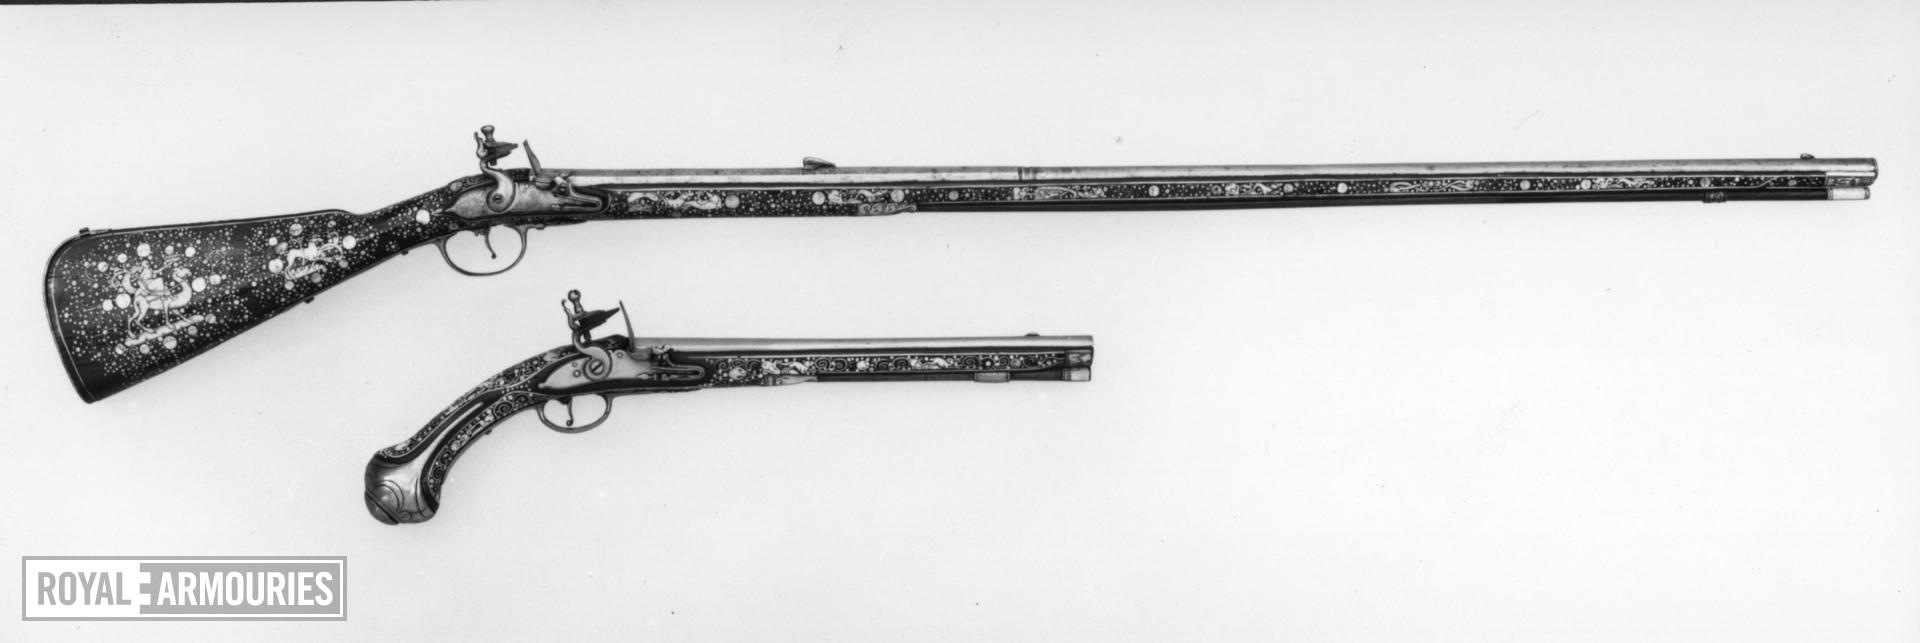 Flintlock muzzle-loading rifle - N/A For sporting use.